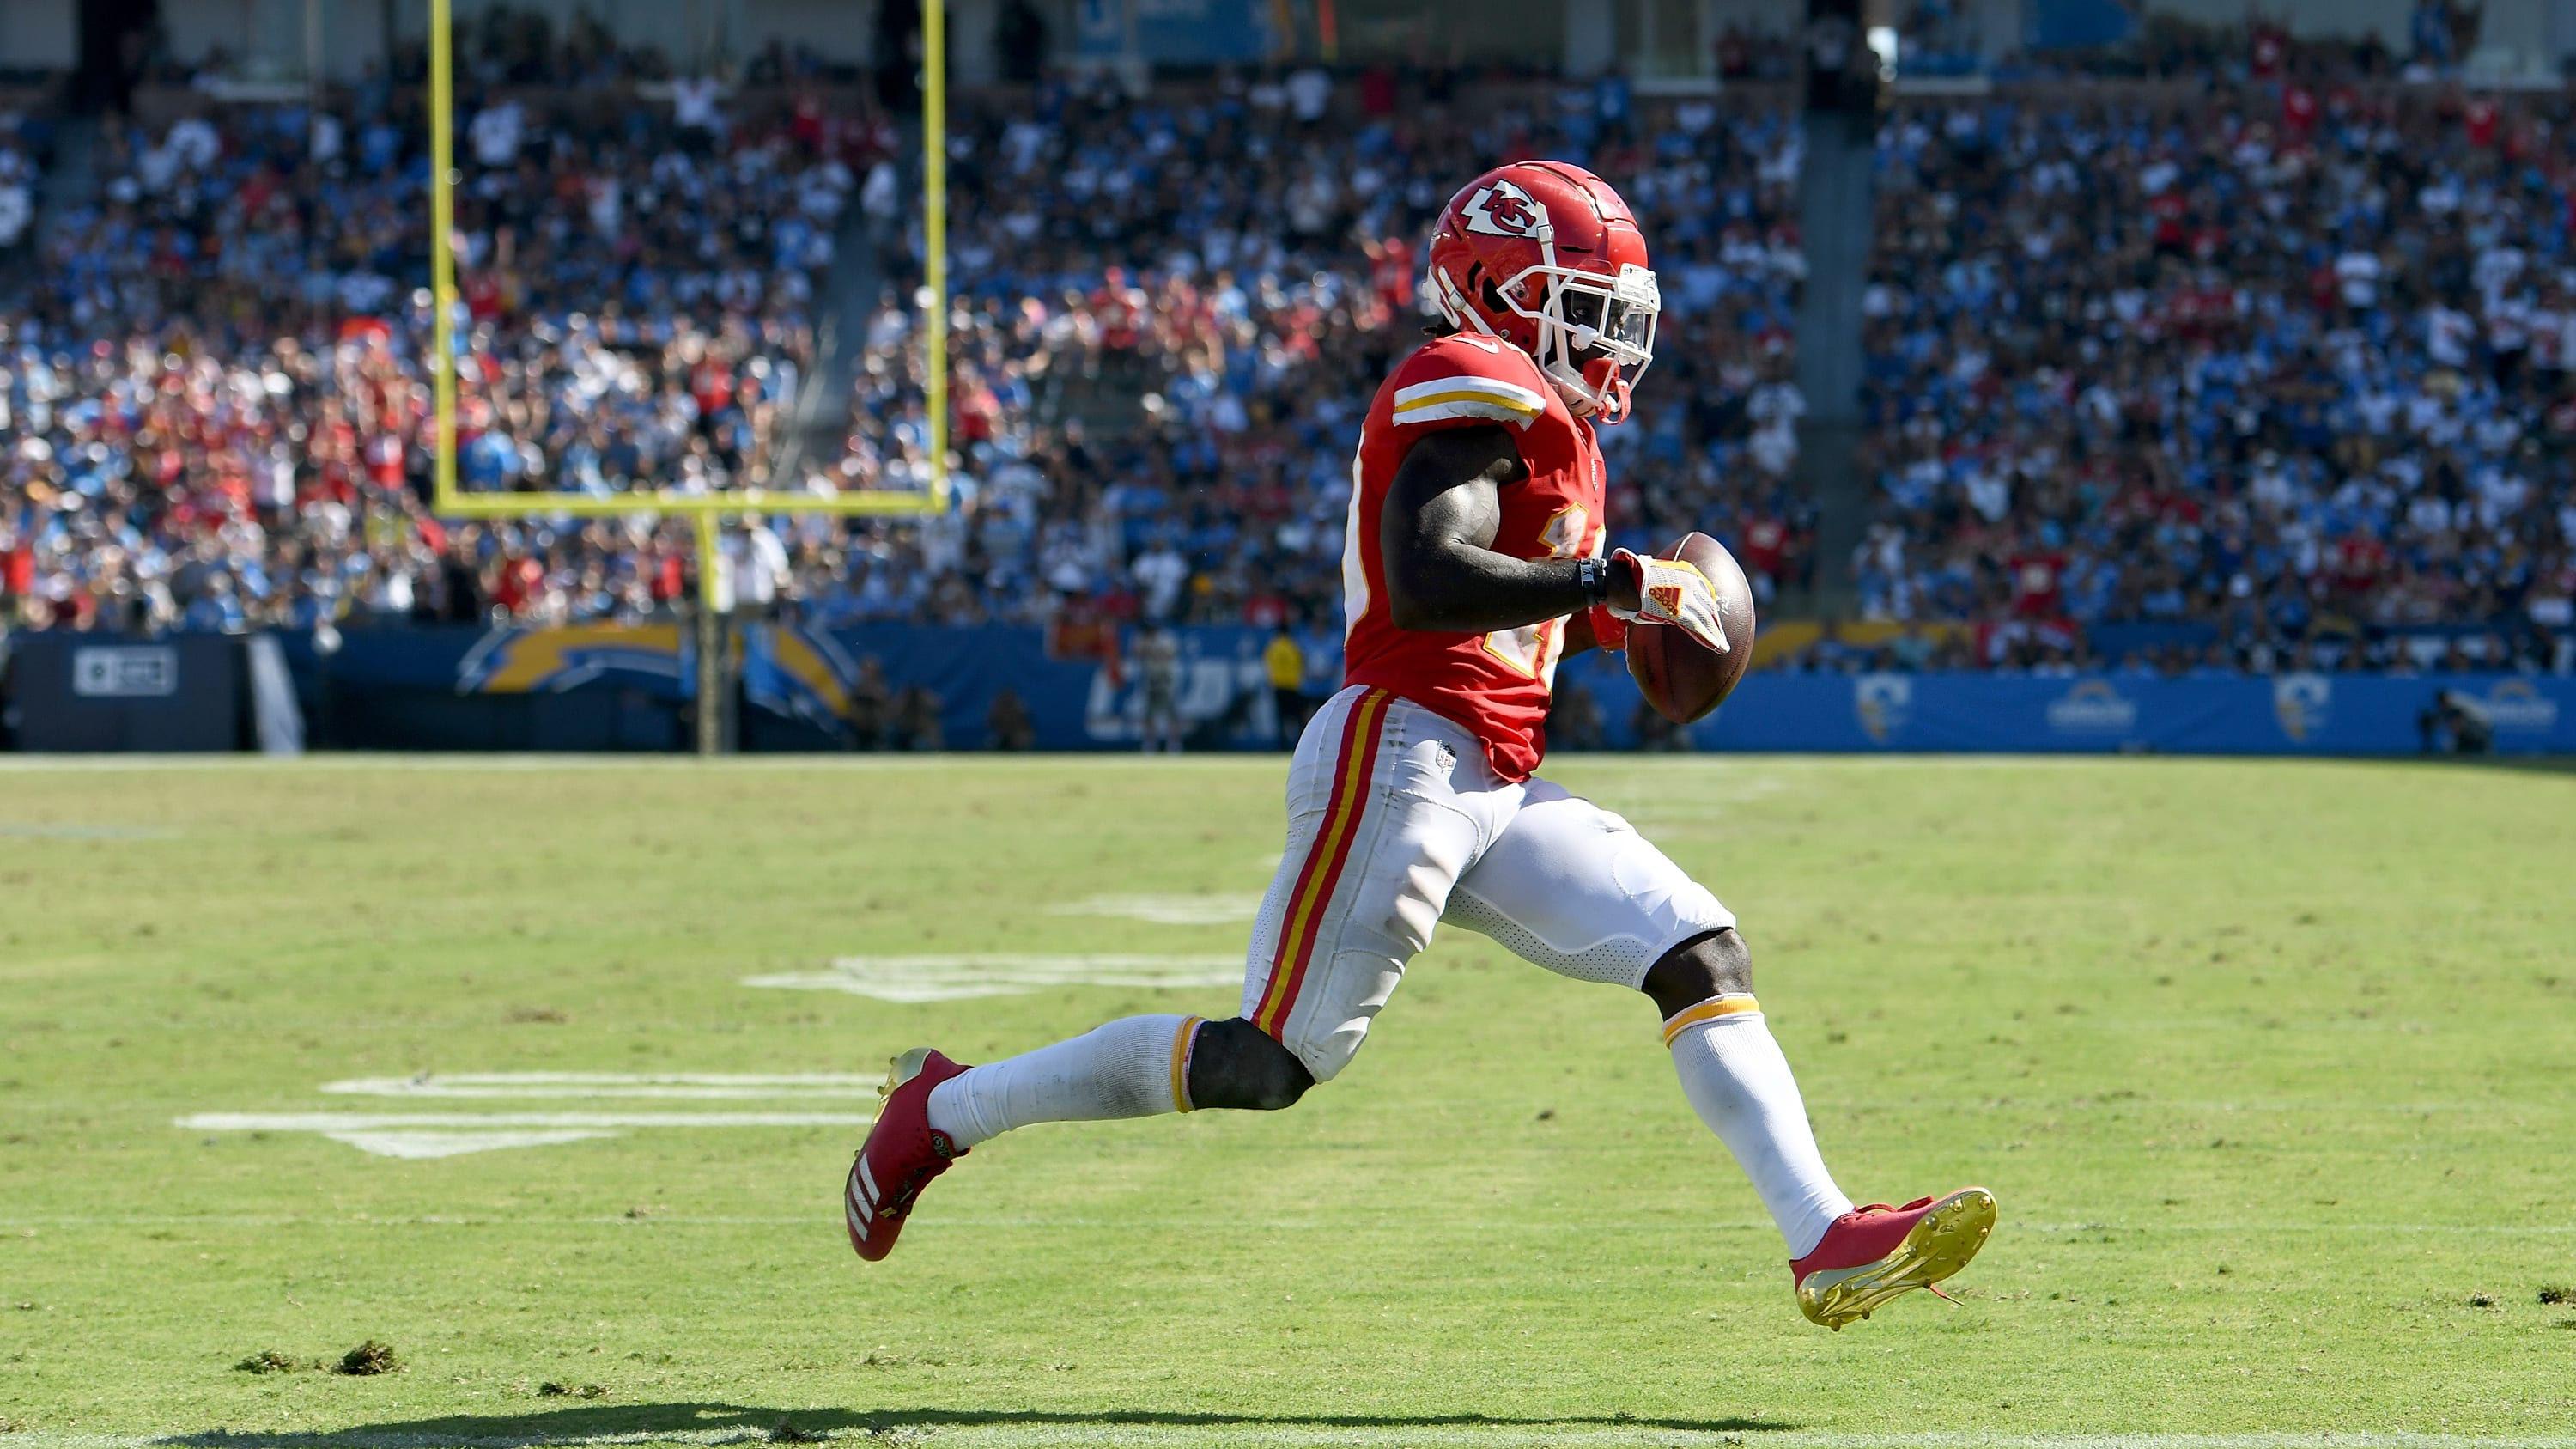 CARSON, CA - SEPTEMBER 09:  Tyreek Hill #10 of the Kansas City Chiefs scores a touchdown untouched, to take a 38-20 lead over the Los Angeles Chargers during the fourth quarter at StubHub Center on September 9, 2018 in Carson, California.  (Photo by Harry How/Getty Images)